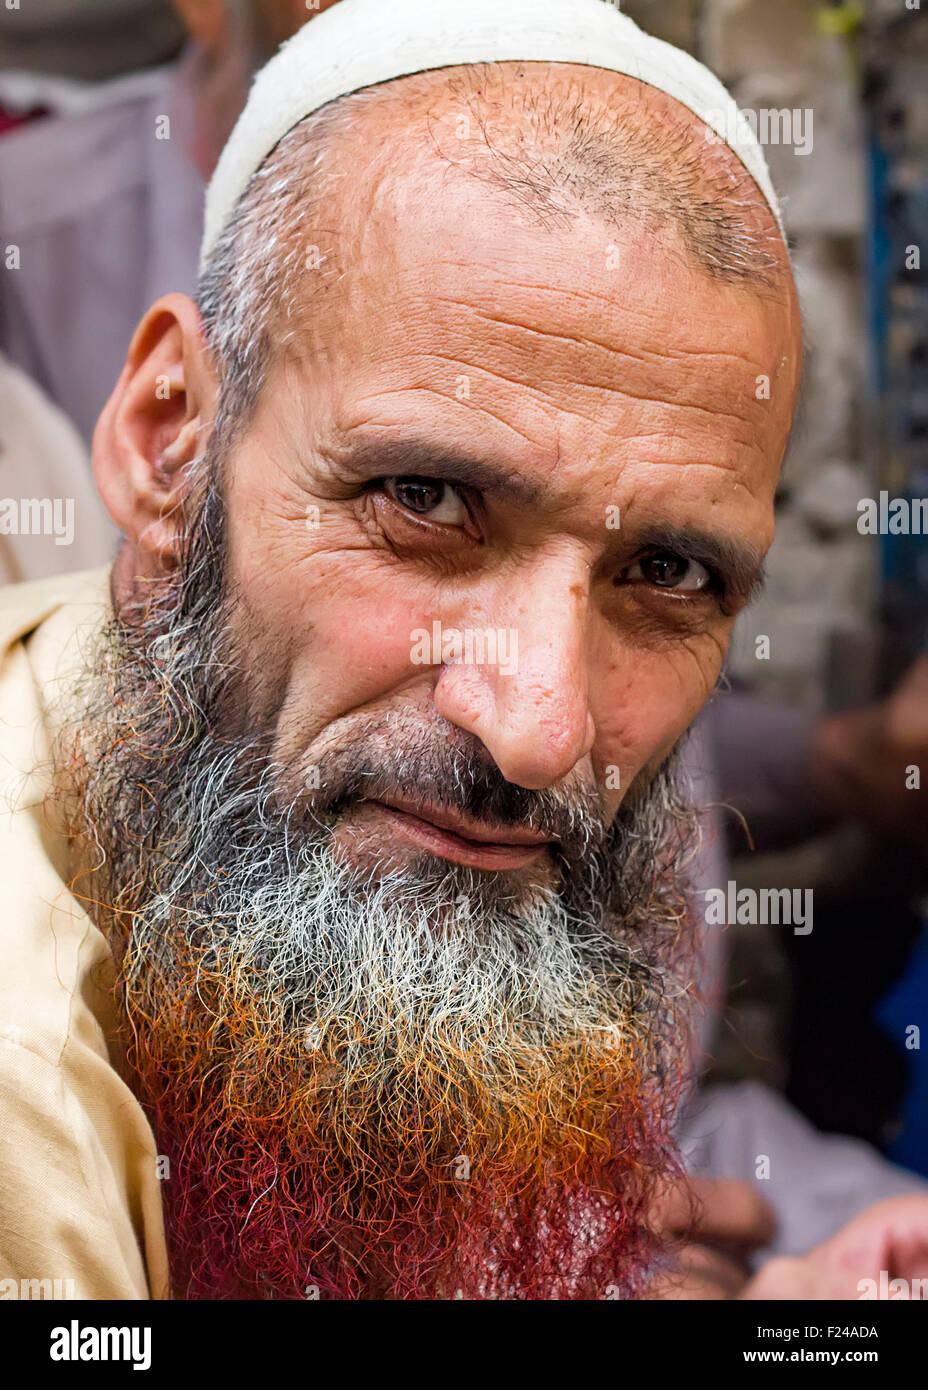 Pashto Refugee In Pakistan With Henna Dyed Beard Many Muslim Men